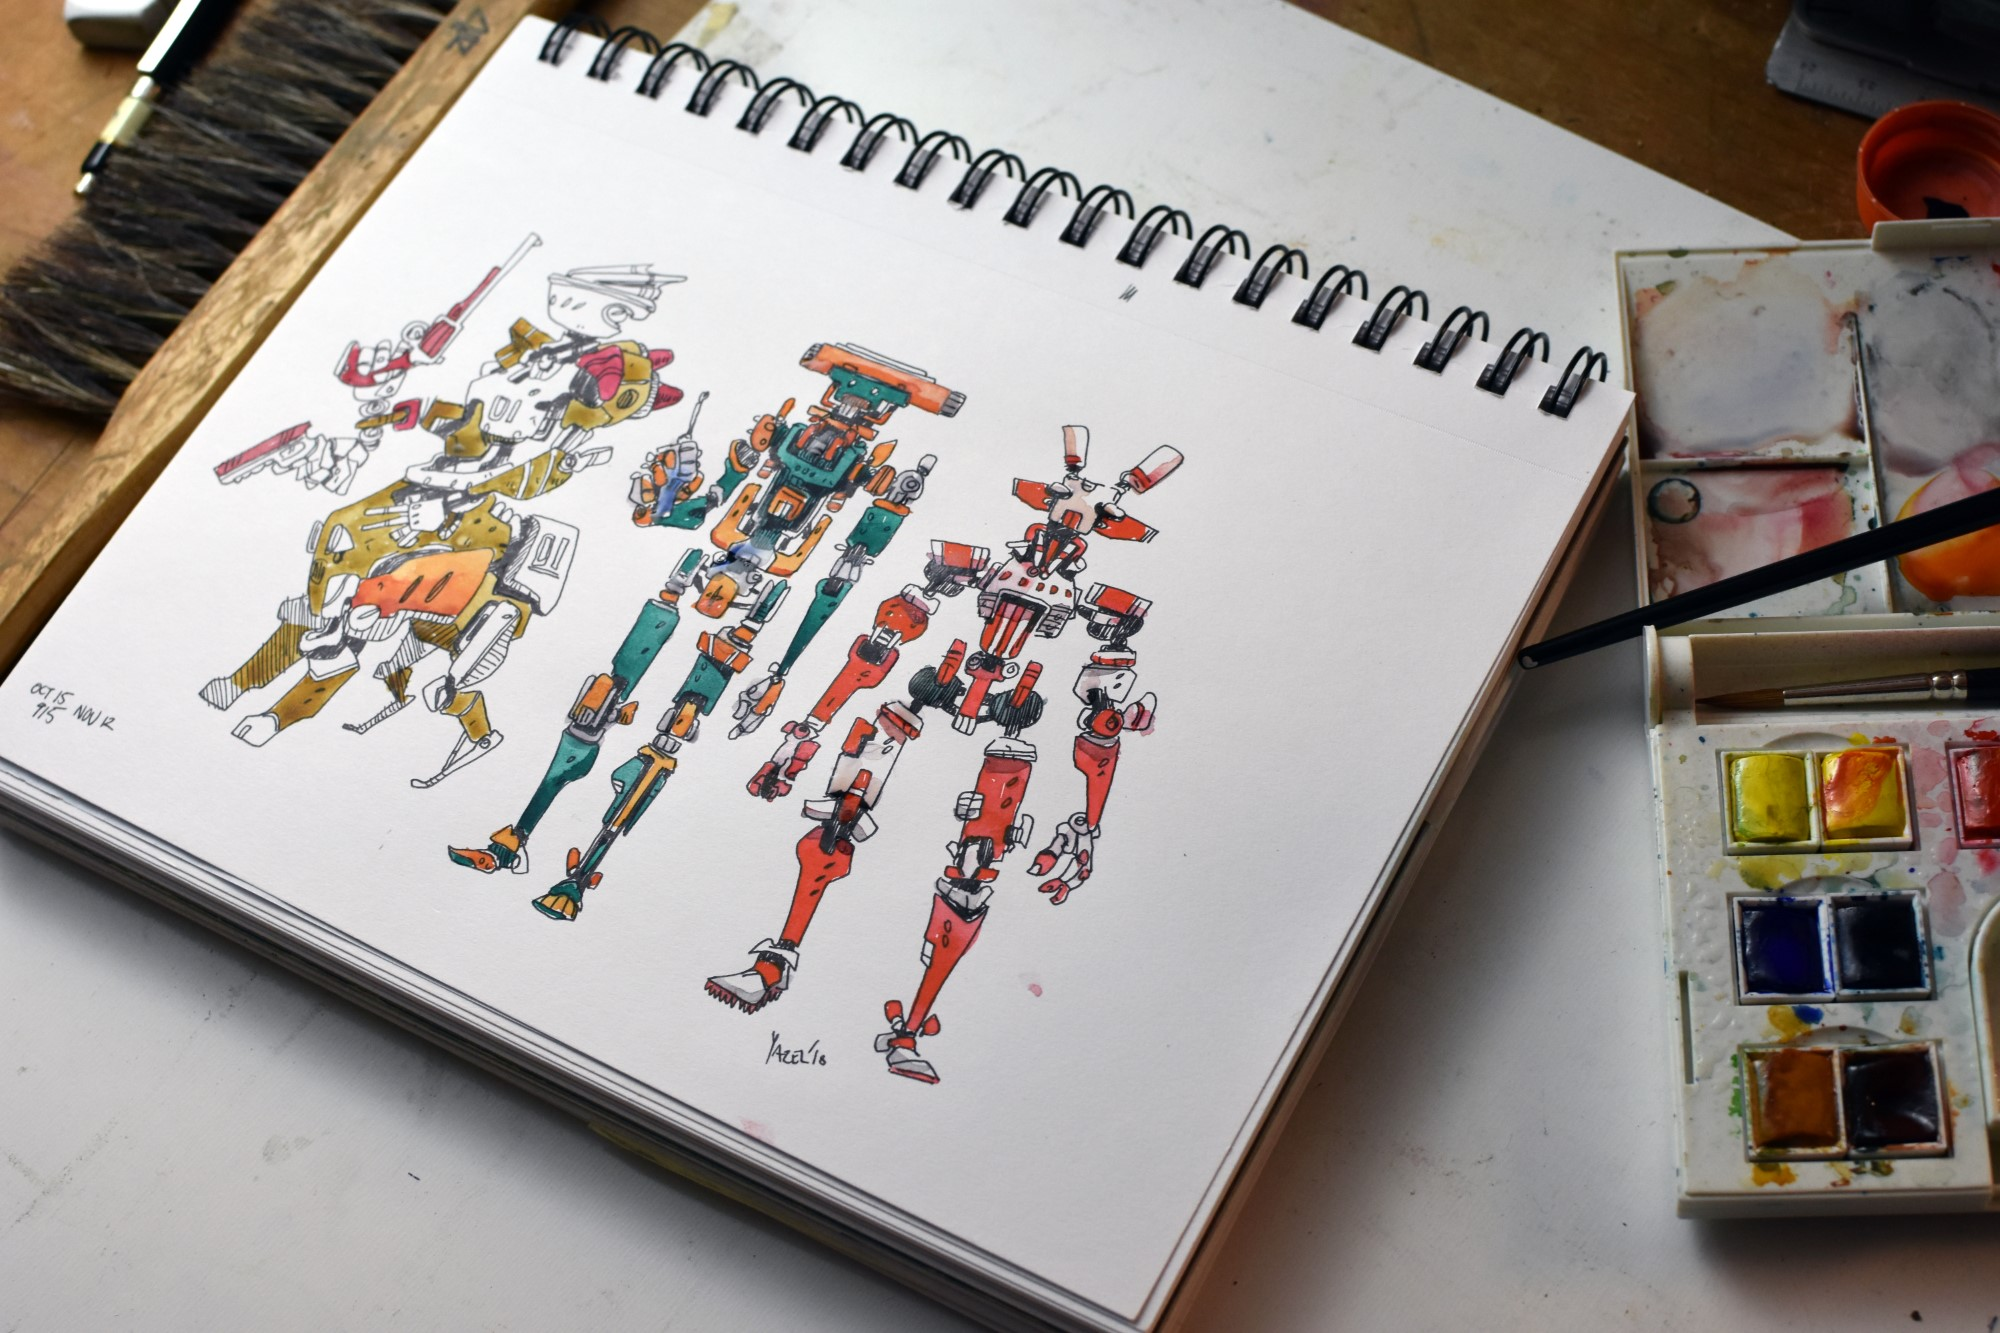 Some comfort zone robots, drawn with a pentel V5 pen, colored with watercolor